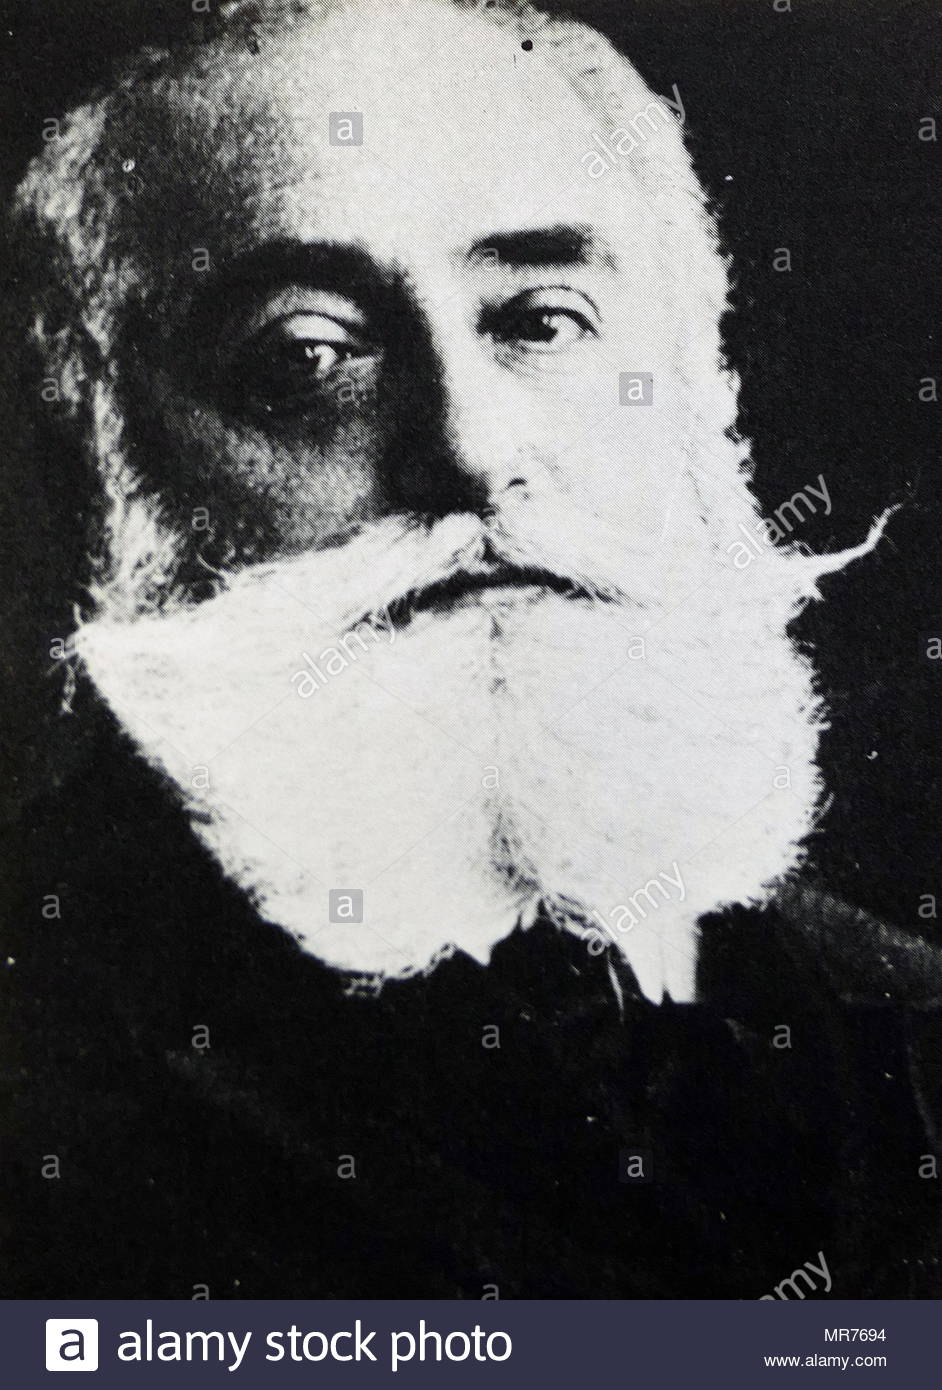 Max Simon Nordau (1849 – 1923), Zionist leader, physician, author, and social critic. co-founder of the World Zionist Organization together with Theodor Herzl - Stock Image